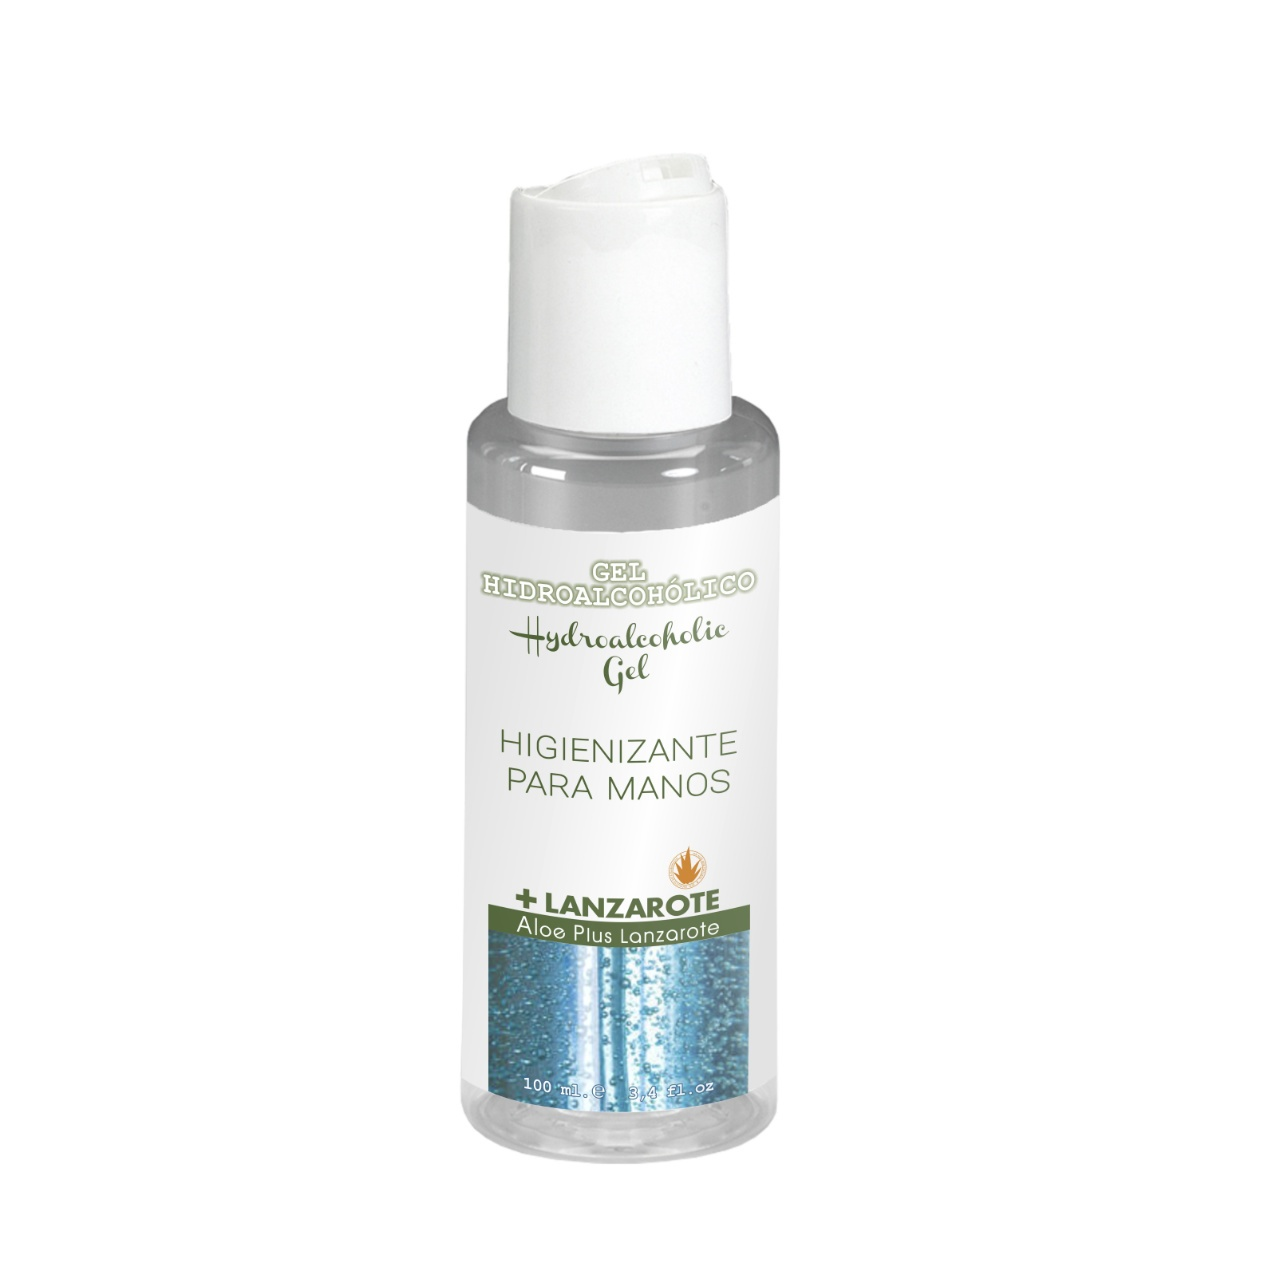 HYDROALCOHOLIC GEL - HAND SANITIZER 100ml